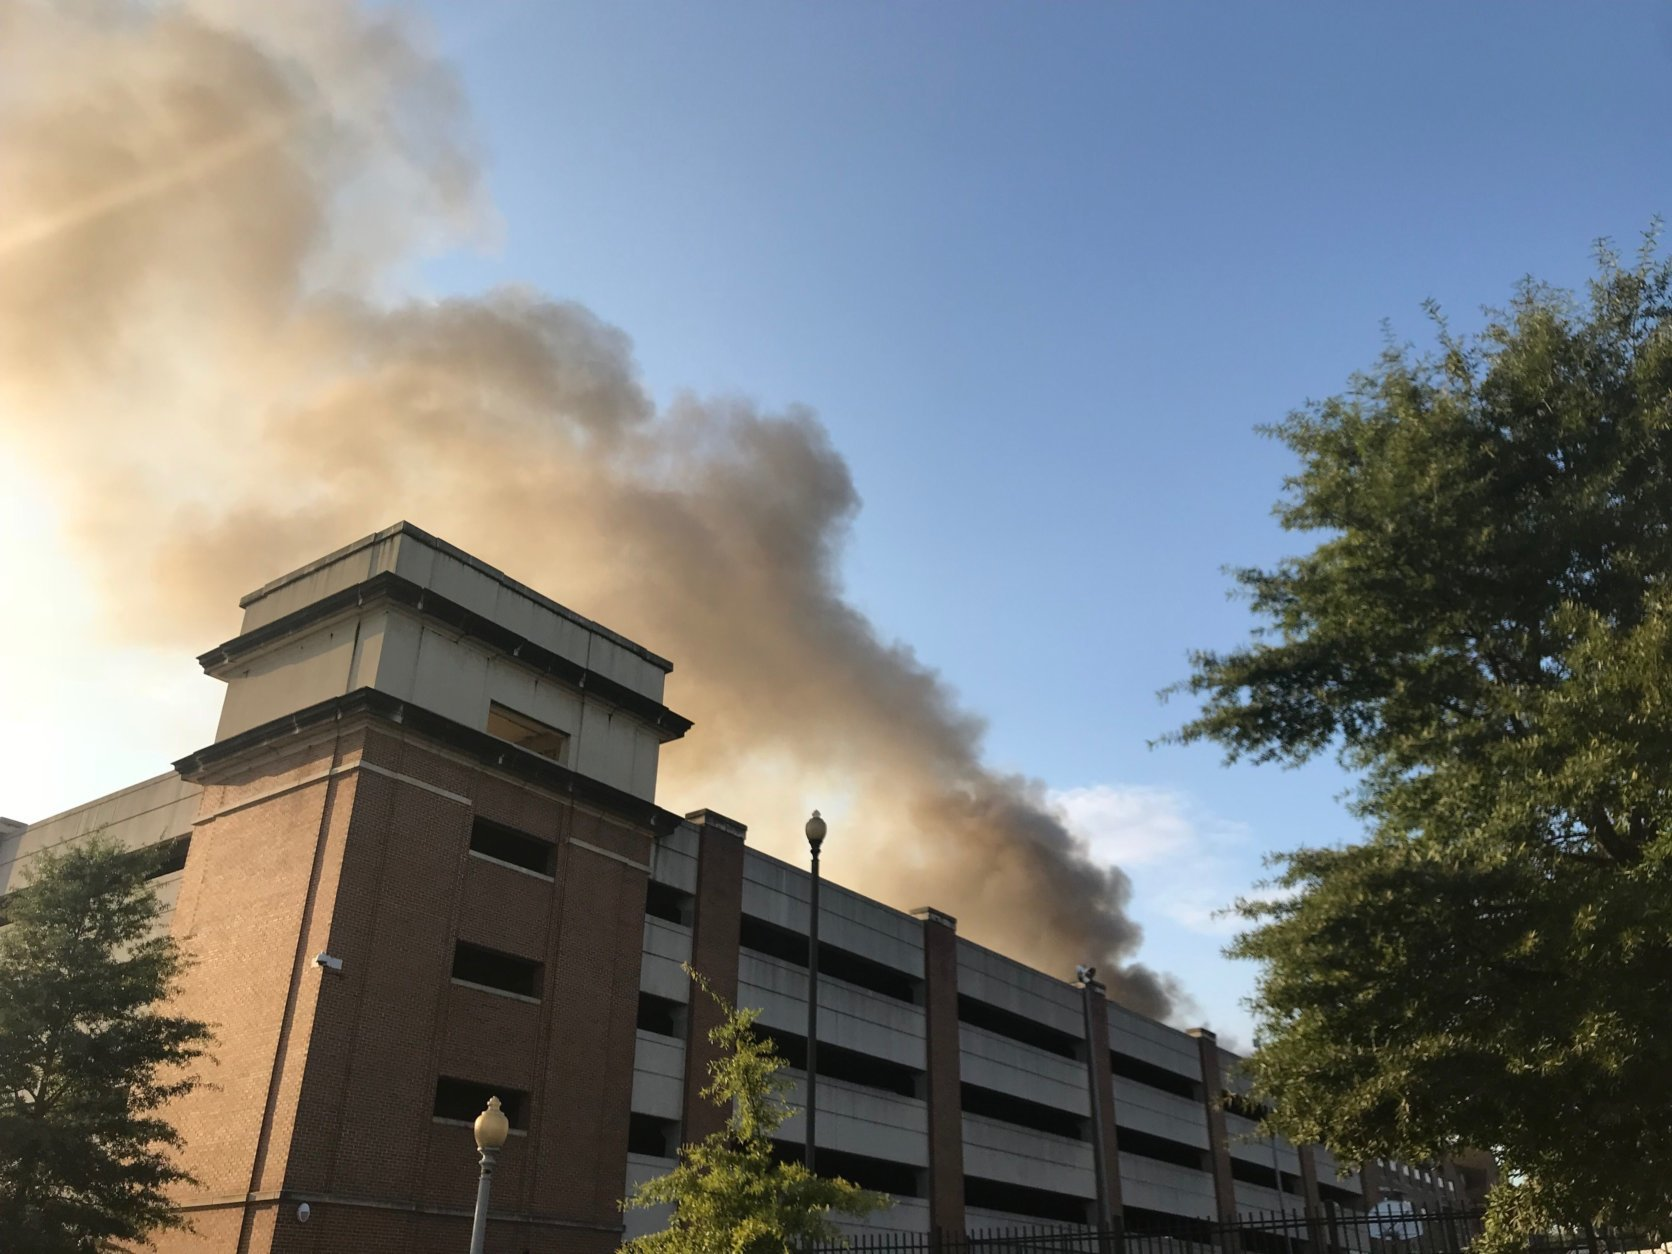 The fire produced thick smoke that could be seen throughout the city. (WTOP/Dick Uliano)